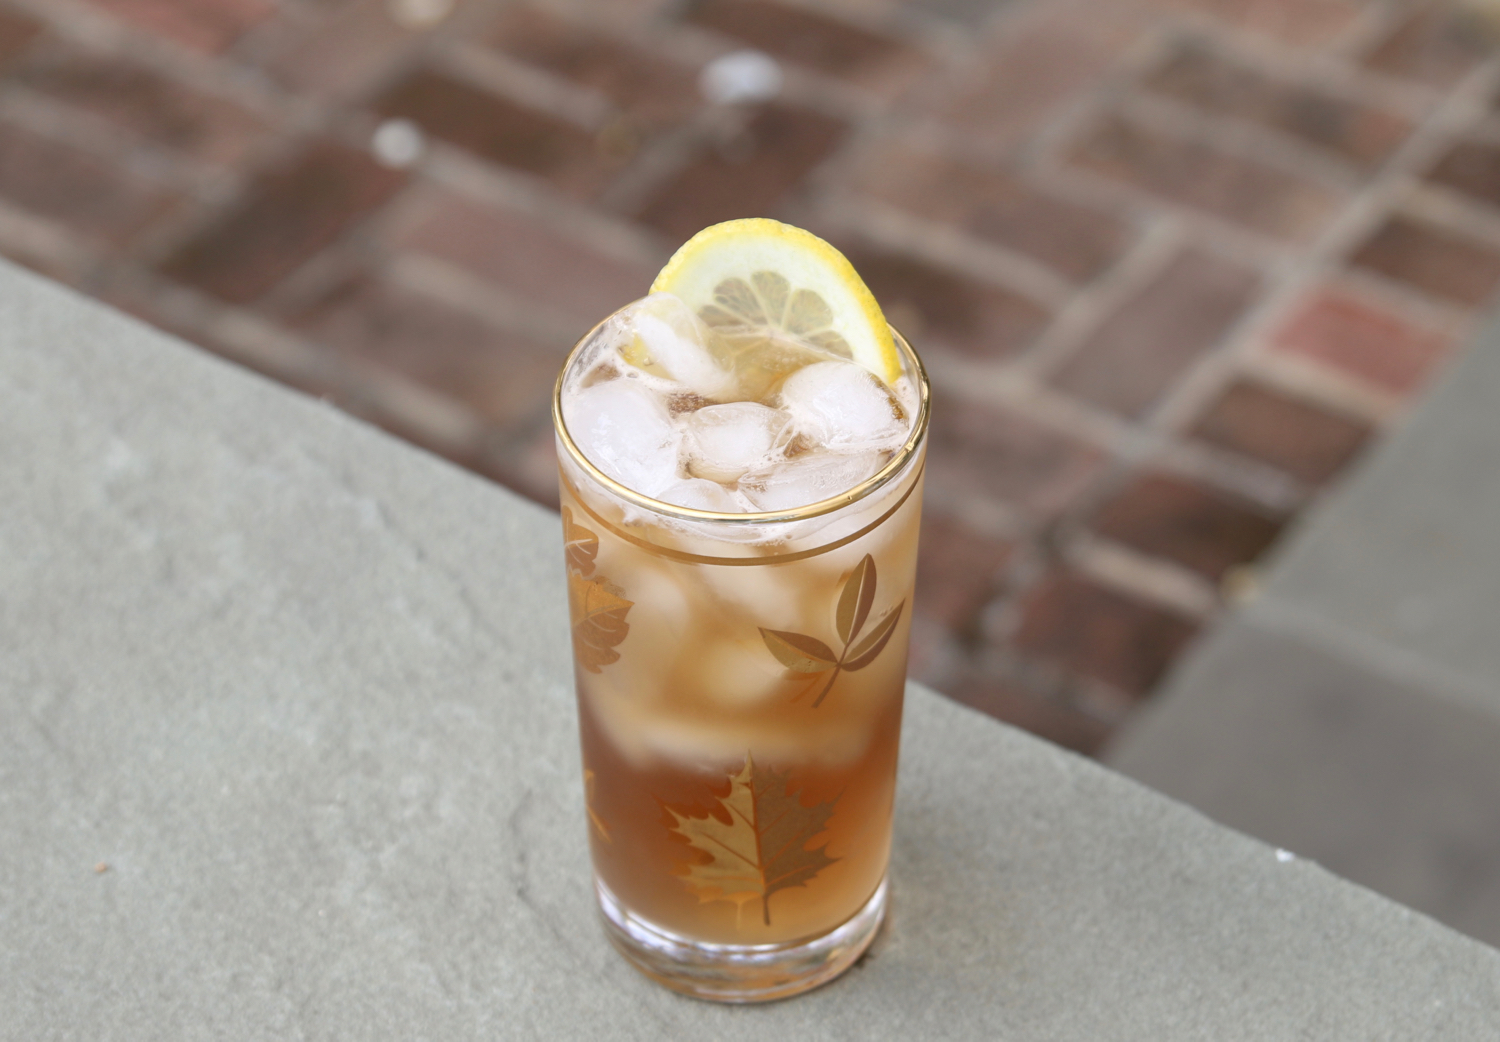 LCR smoky ginger ale